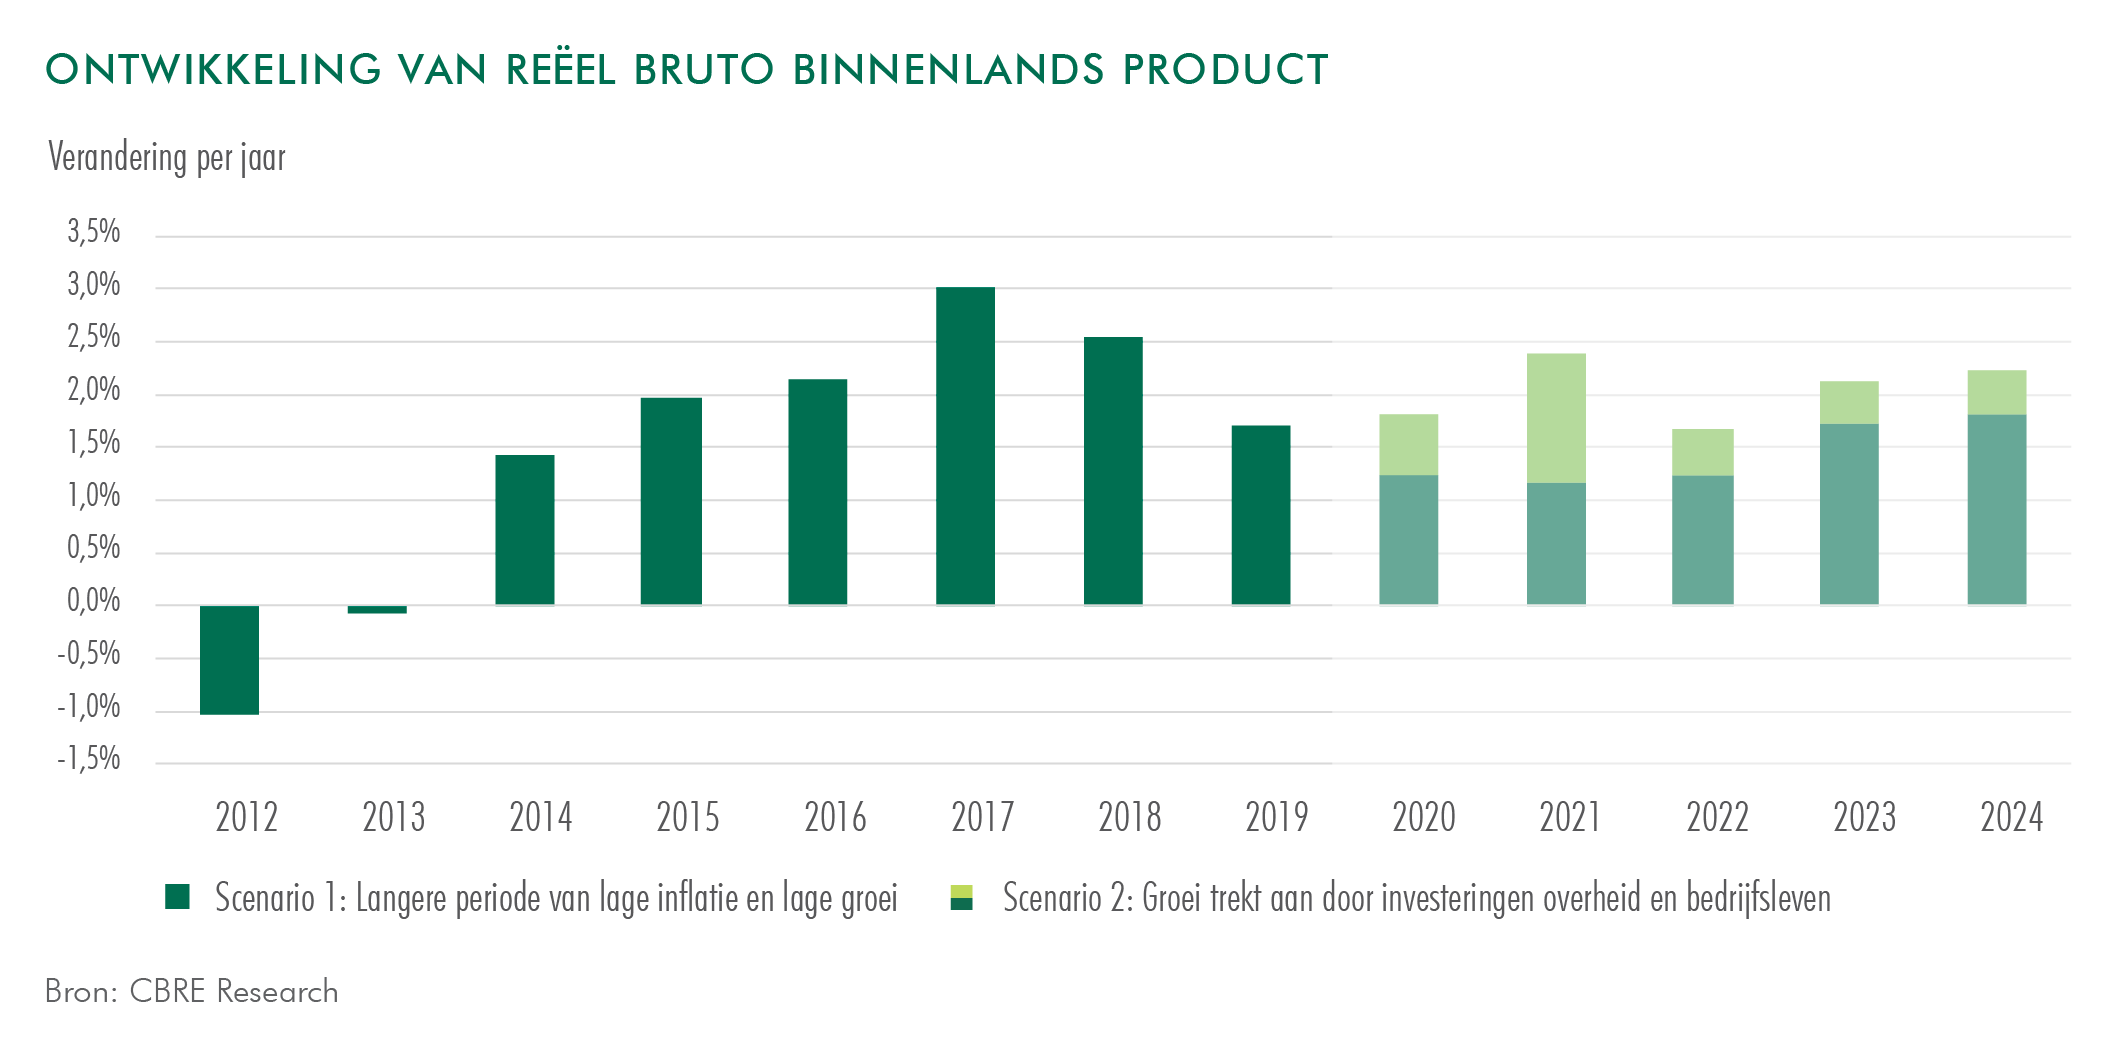 CBRE DEVELOPMENT OF REAL GROSS DOMESTIC PRODUCT NL-15